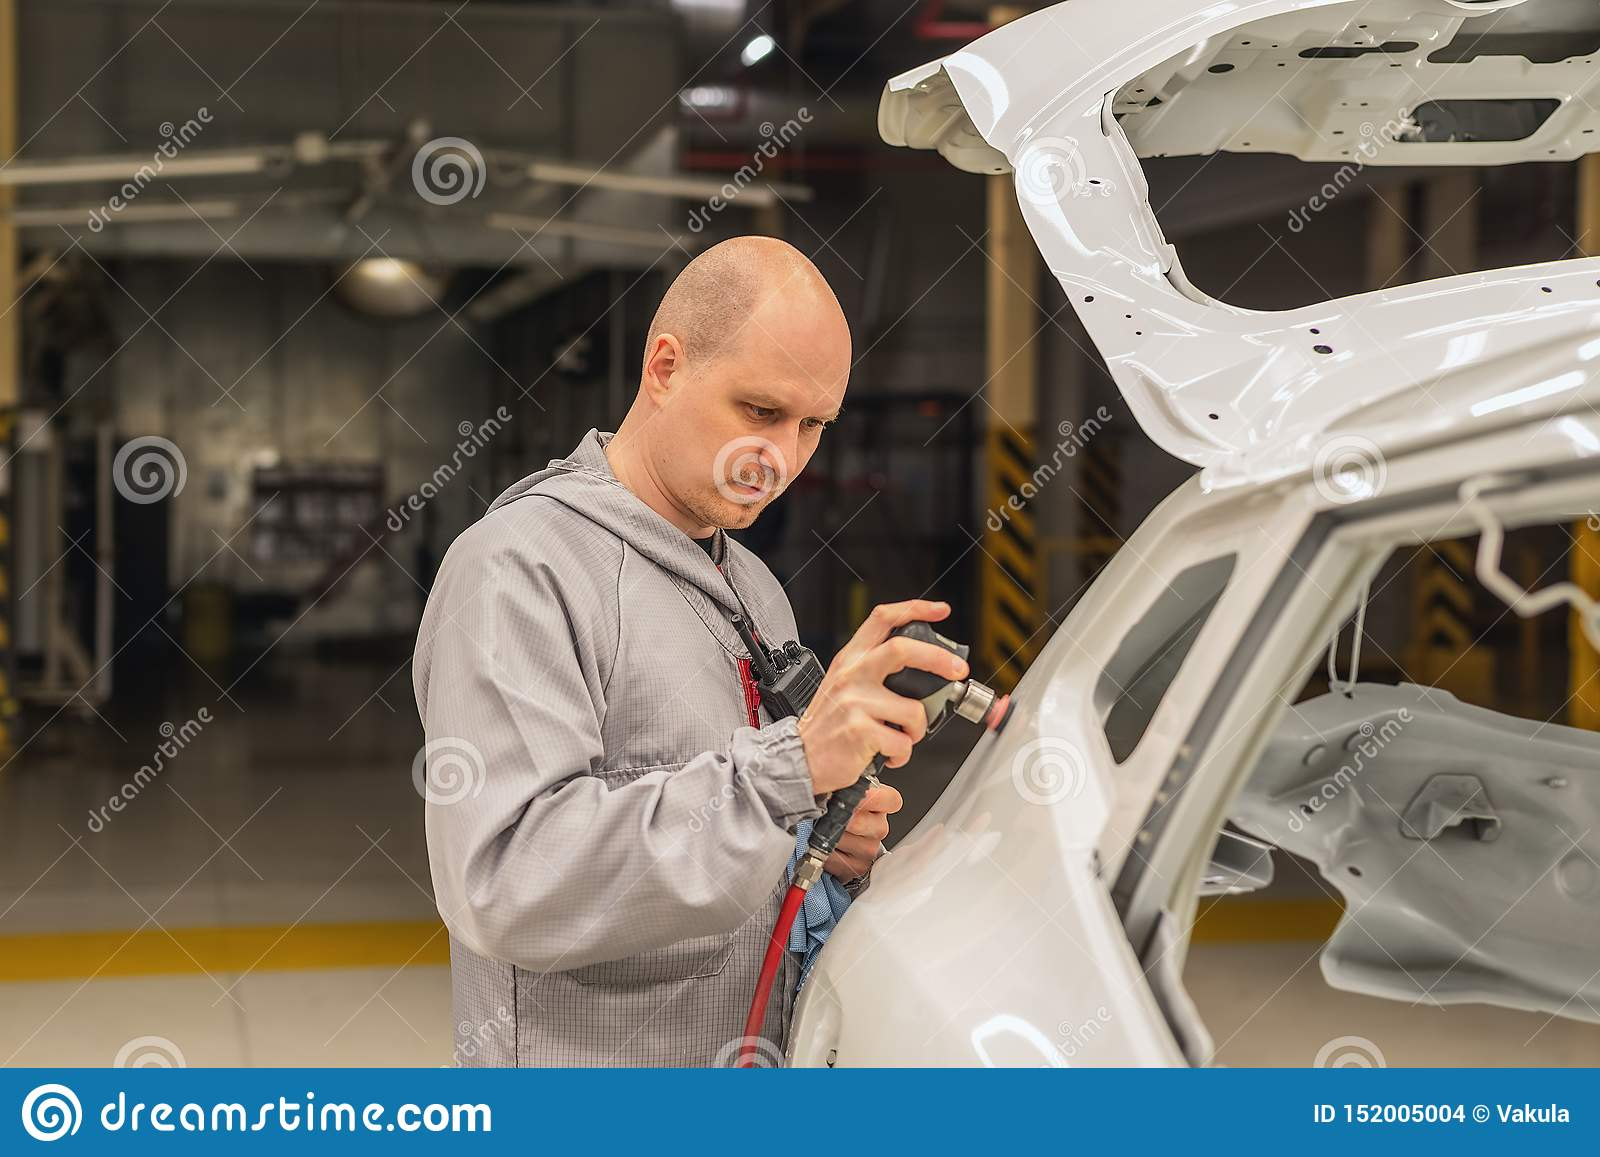 A Worker In The Painting Shop Of A Car Body Sanding Painted Items Stock Photo Image Of Artist Master 152005004